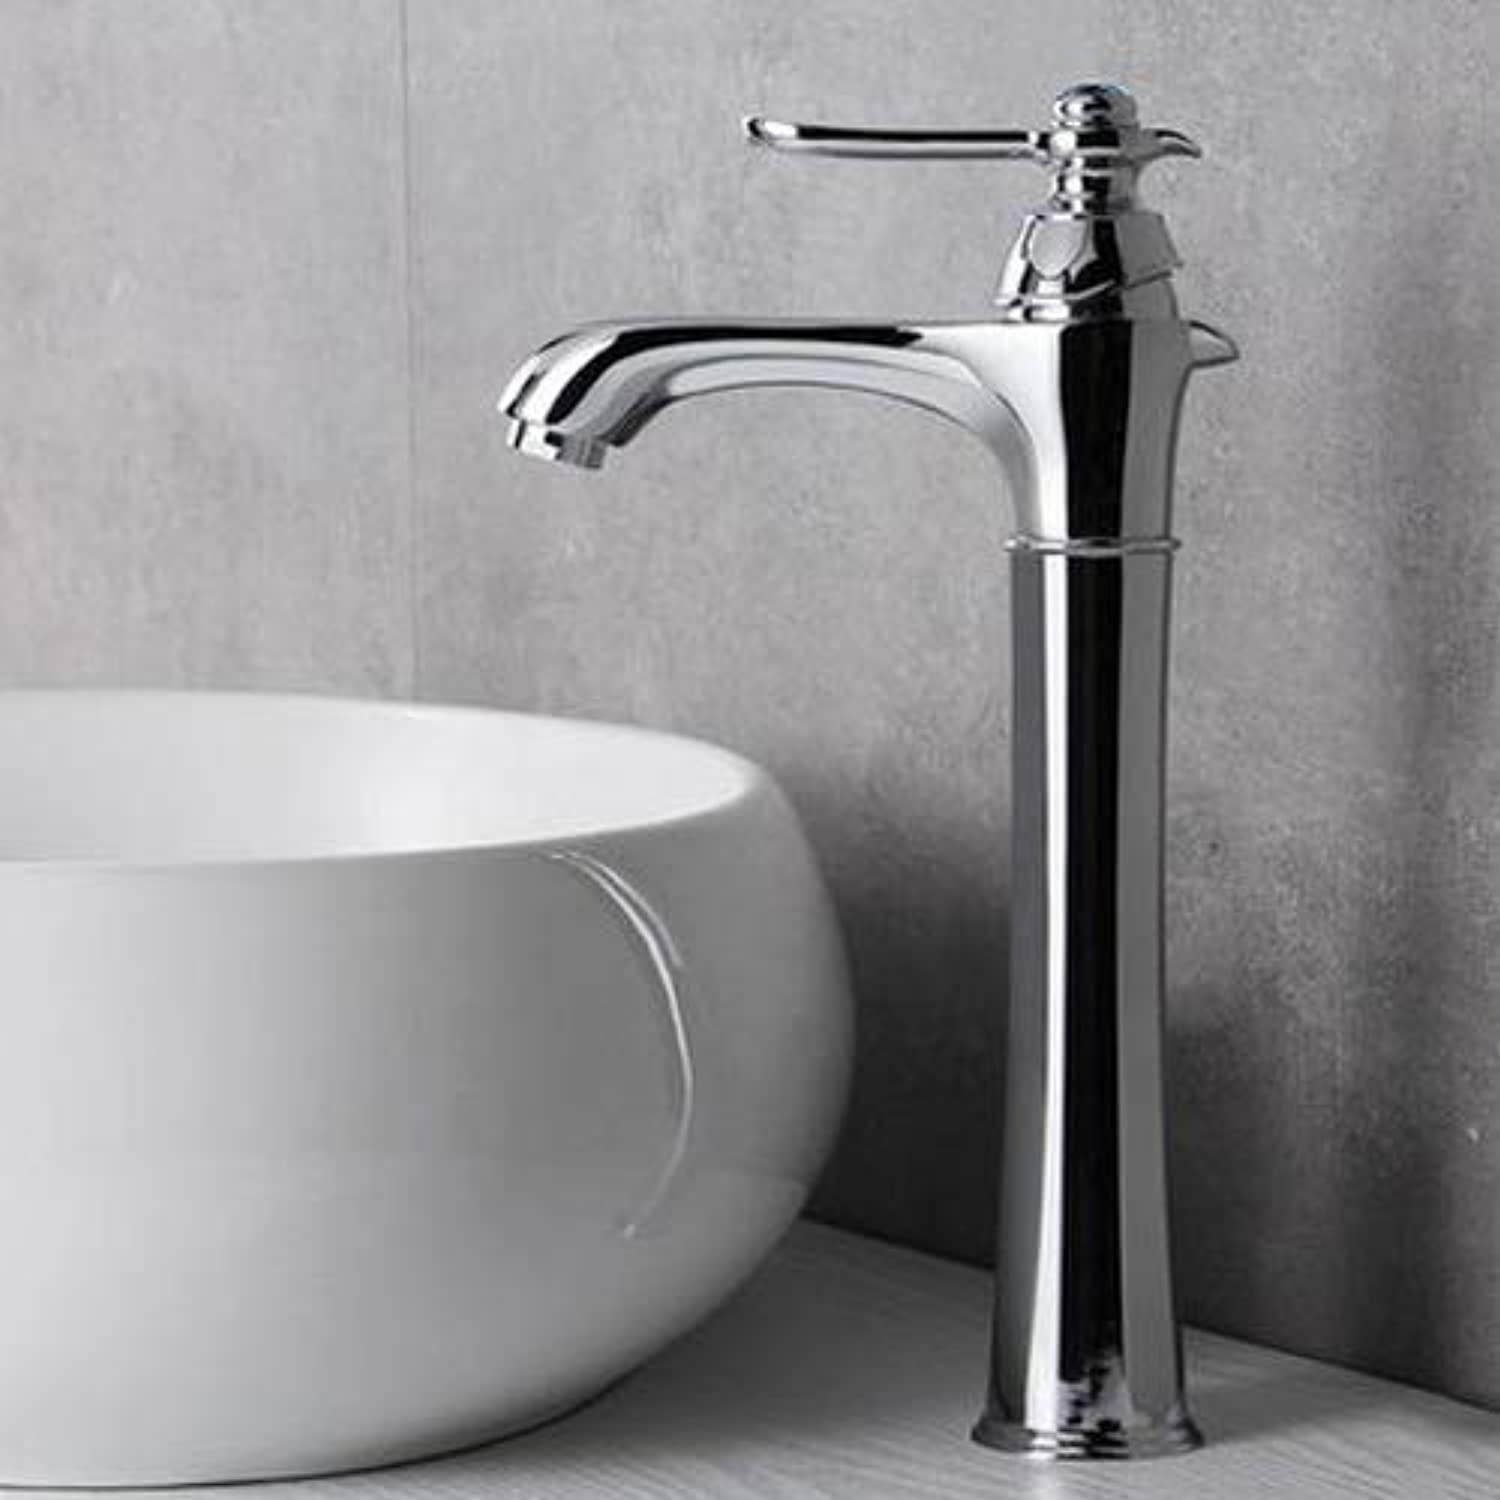 AXWT Bathroom Hot And Cold Above Counter Basin Faucet Taps Basin Wash Basin Plating Chromium Faucet Water-tap bluee Diamond Faucet The New